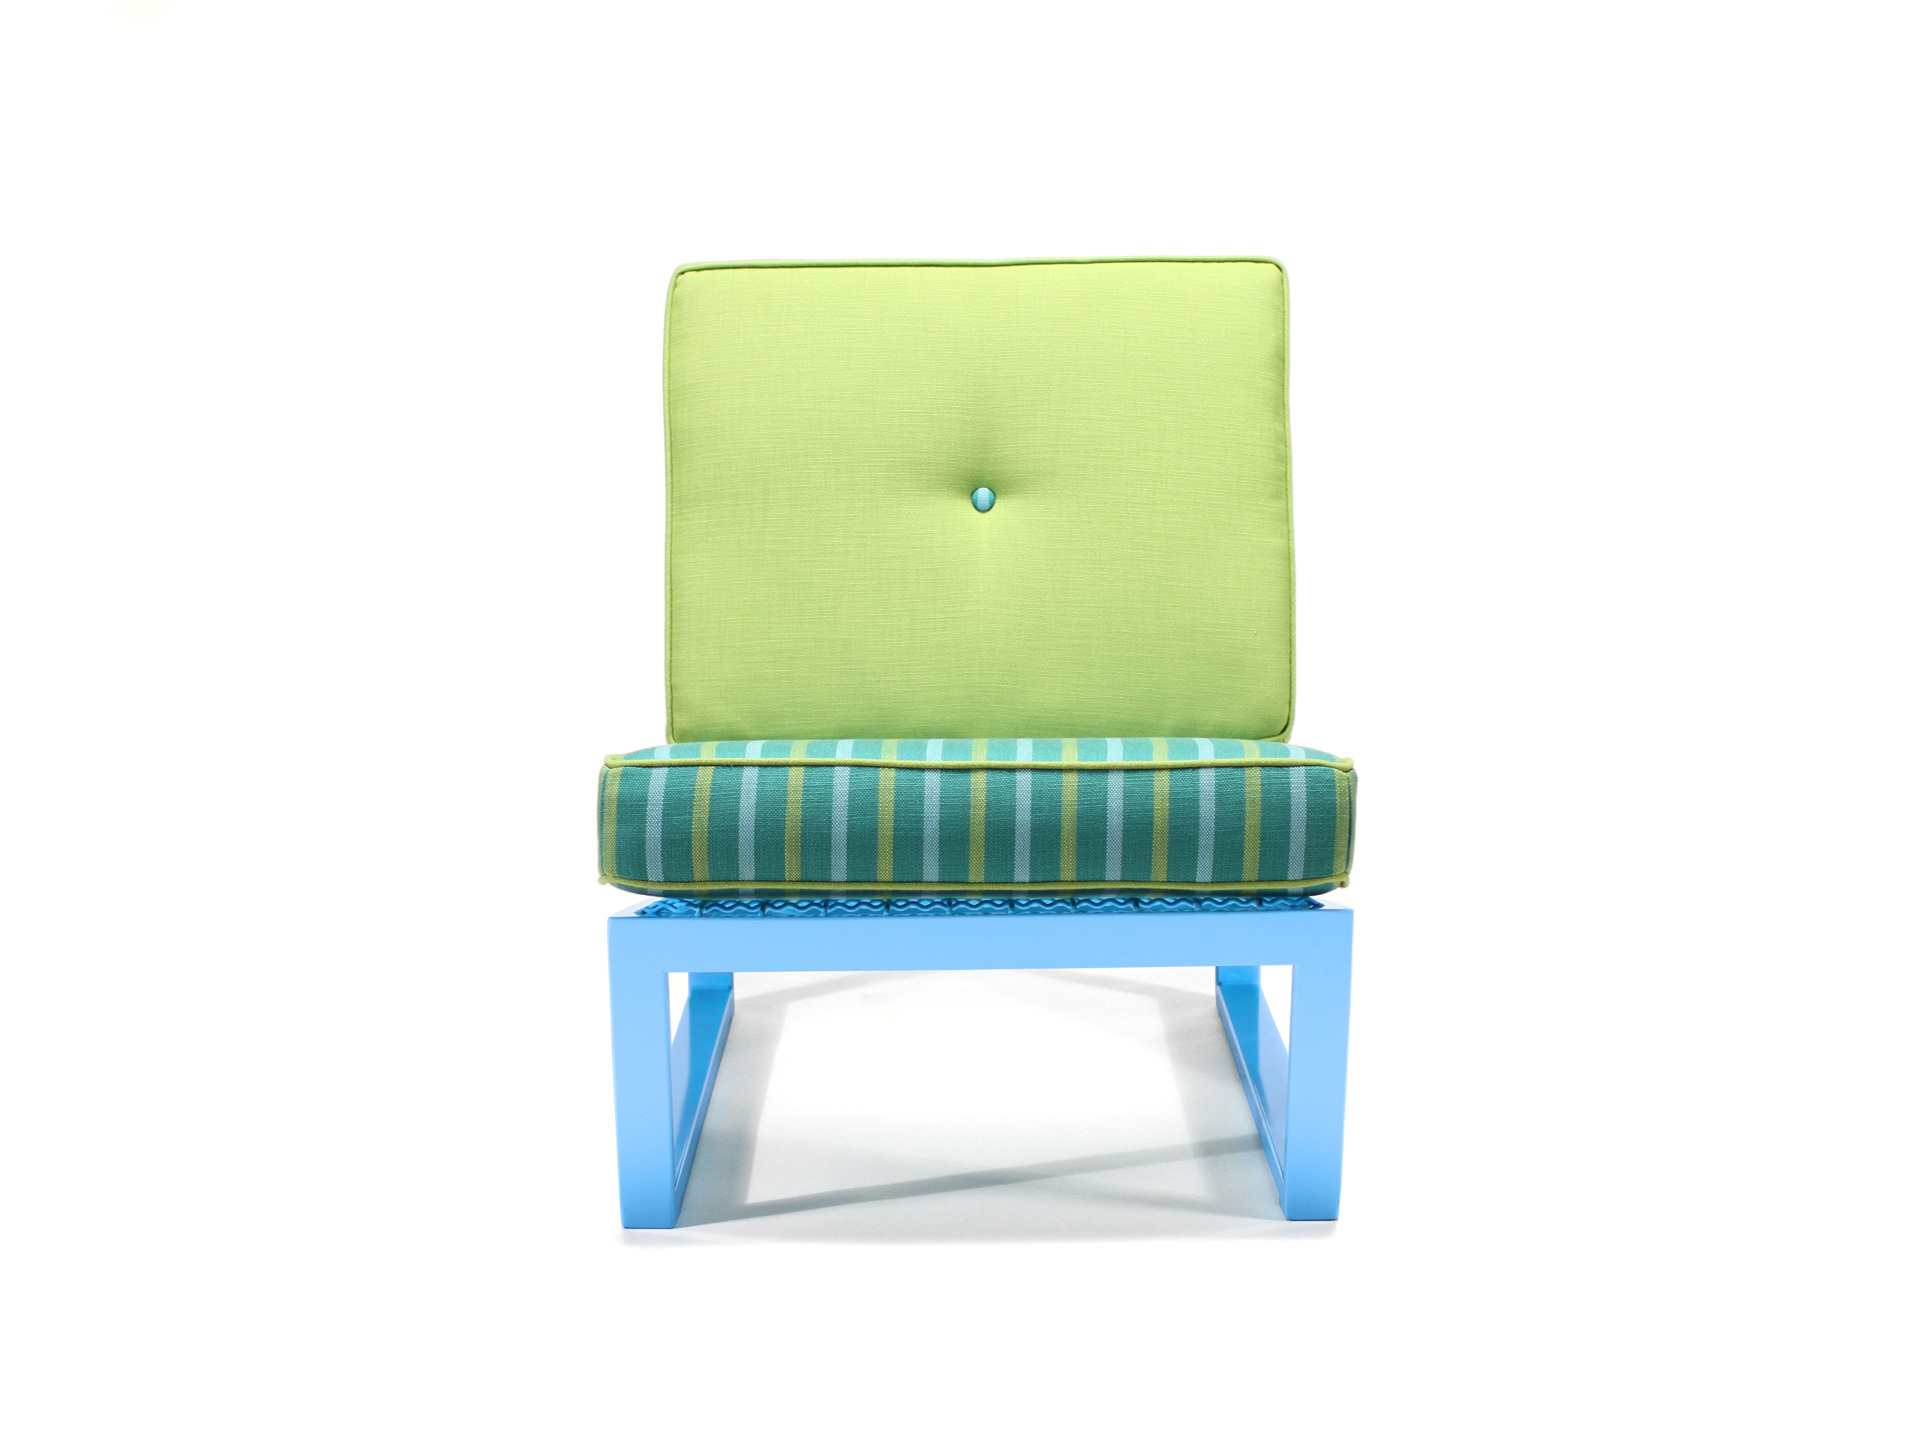 Del Calle chair shown from the front